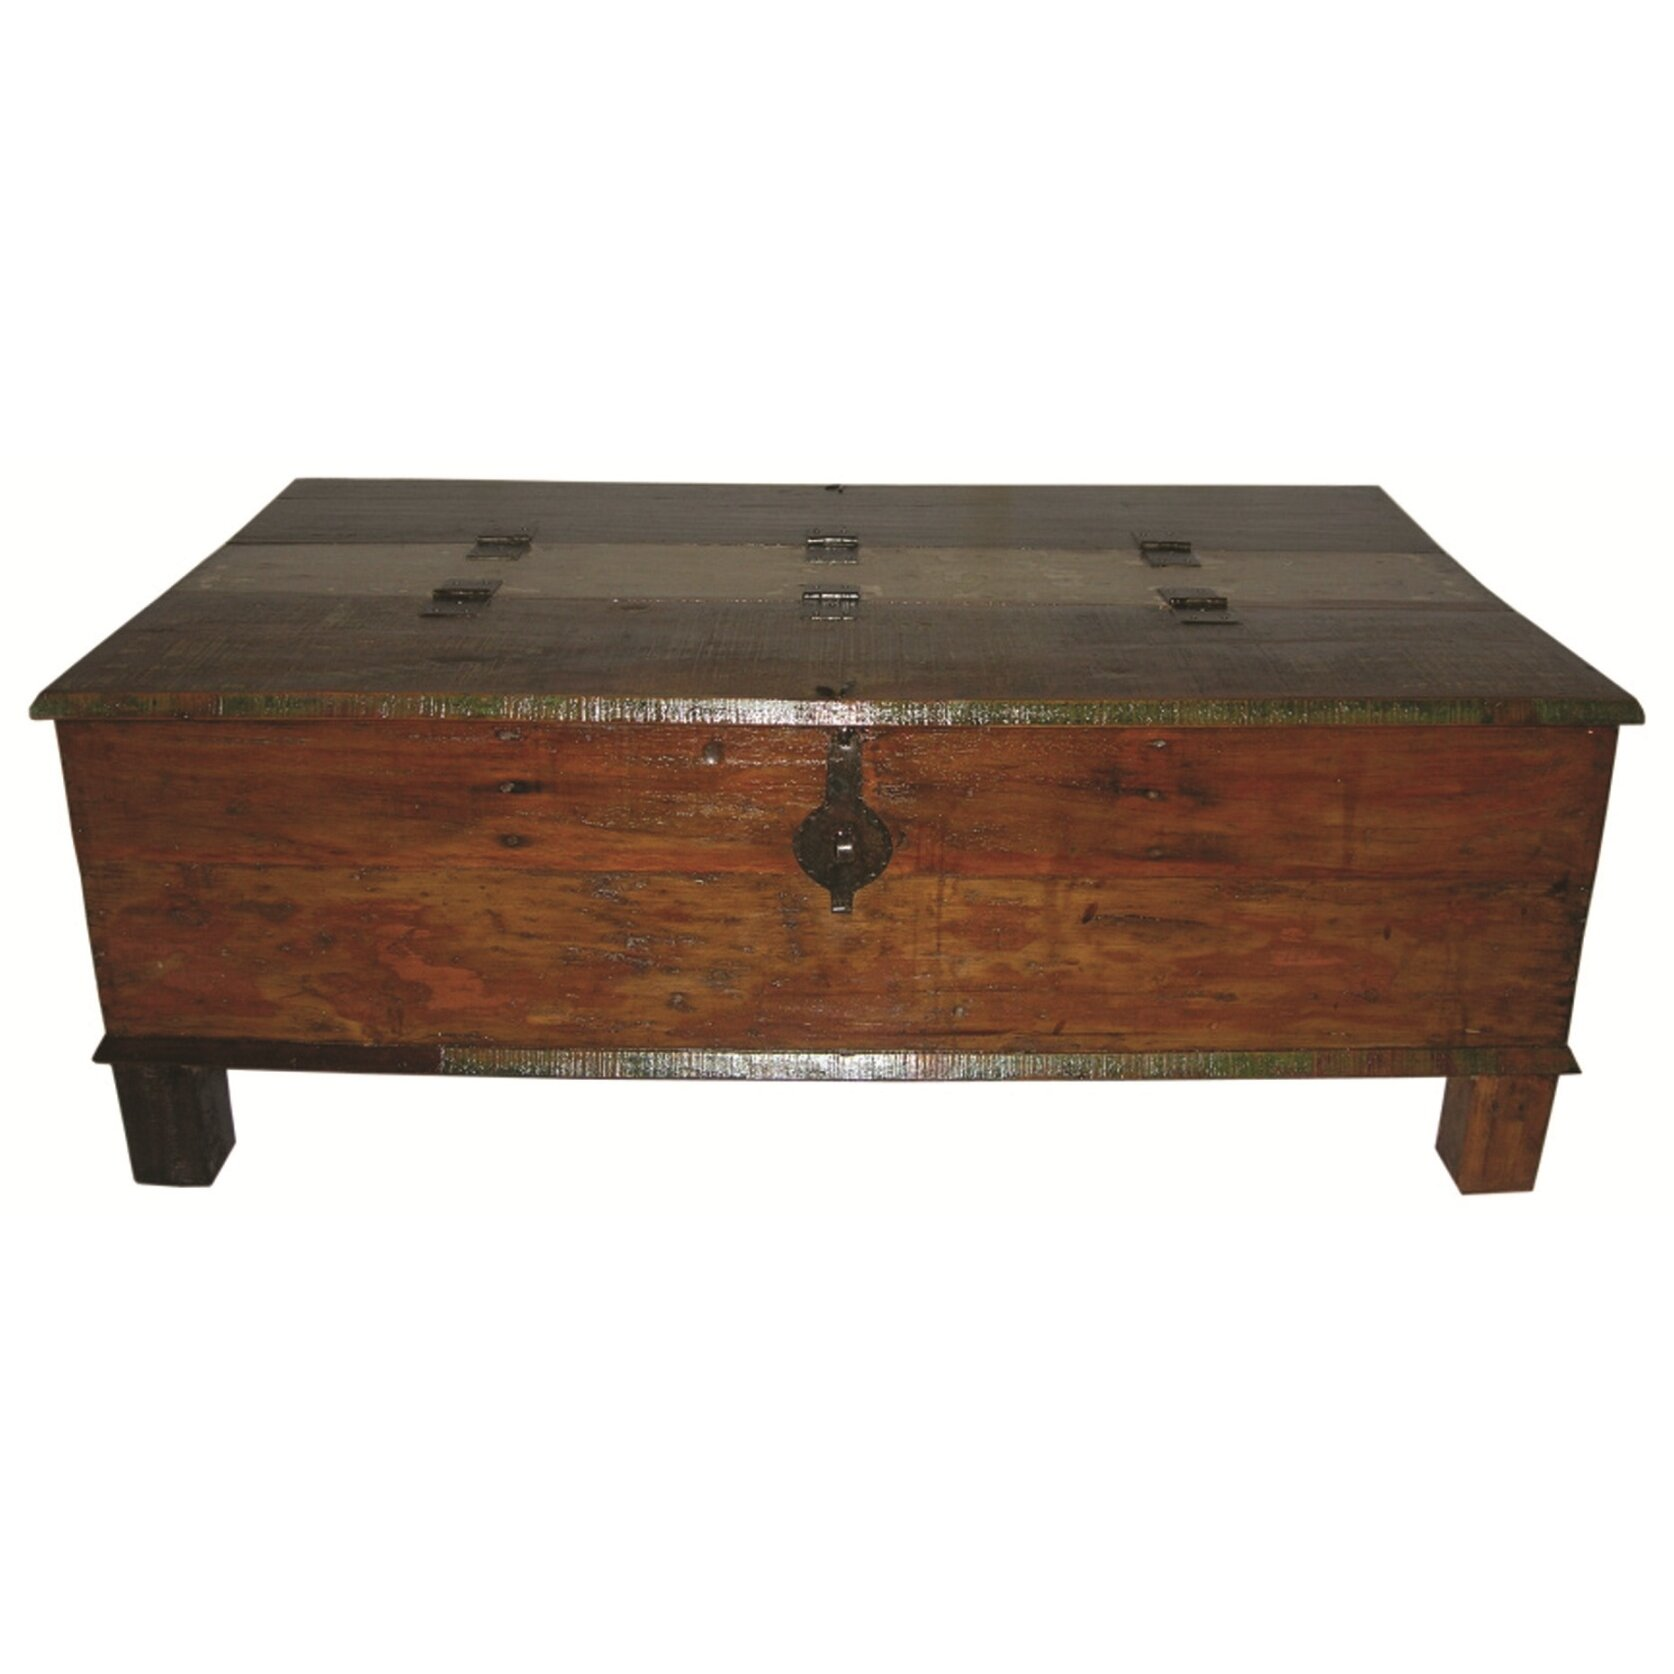 Moti Furniture Box Trunk Coffee Table Reviews Wayfair